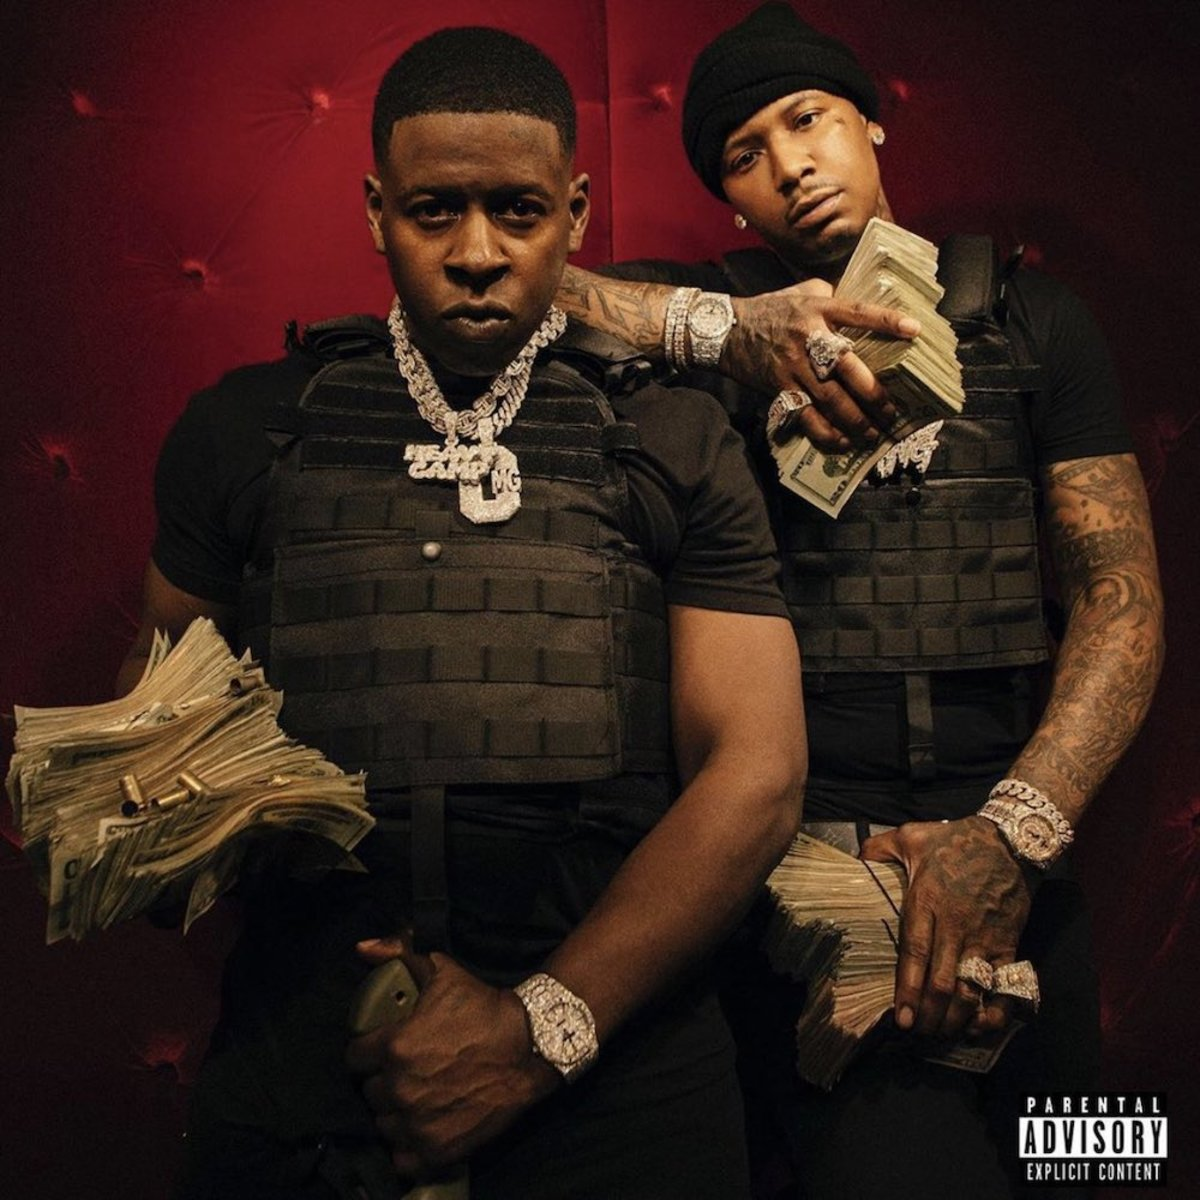 .@MoneyBaggYo and @BlacYoungstaFB drop joint project 'Code Red':  https://t.co/LGGKN5f6mO https://t.co/FgyiBmabwv